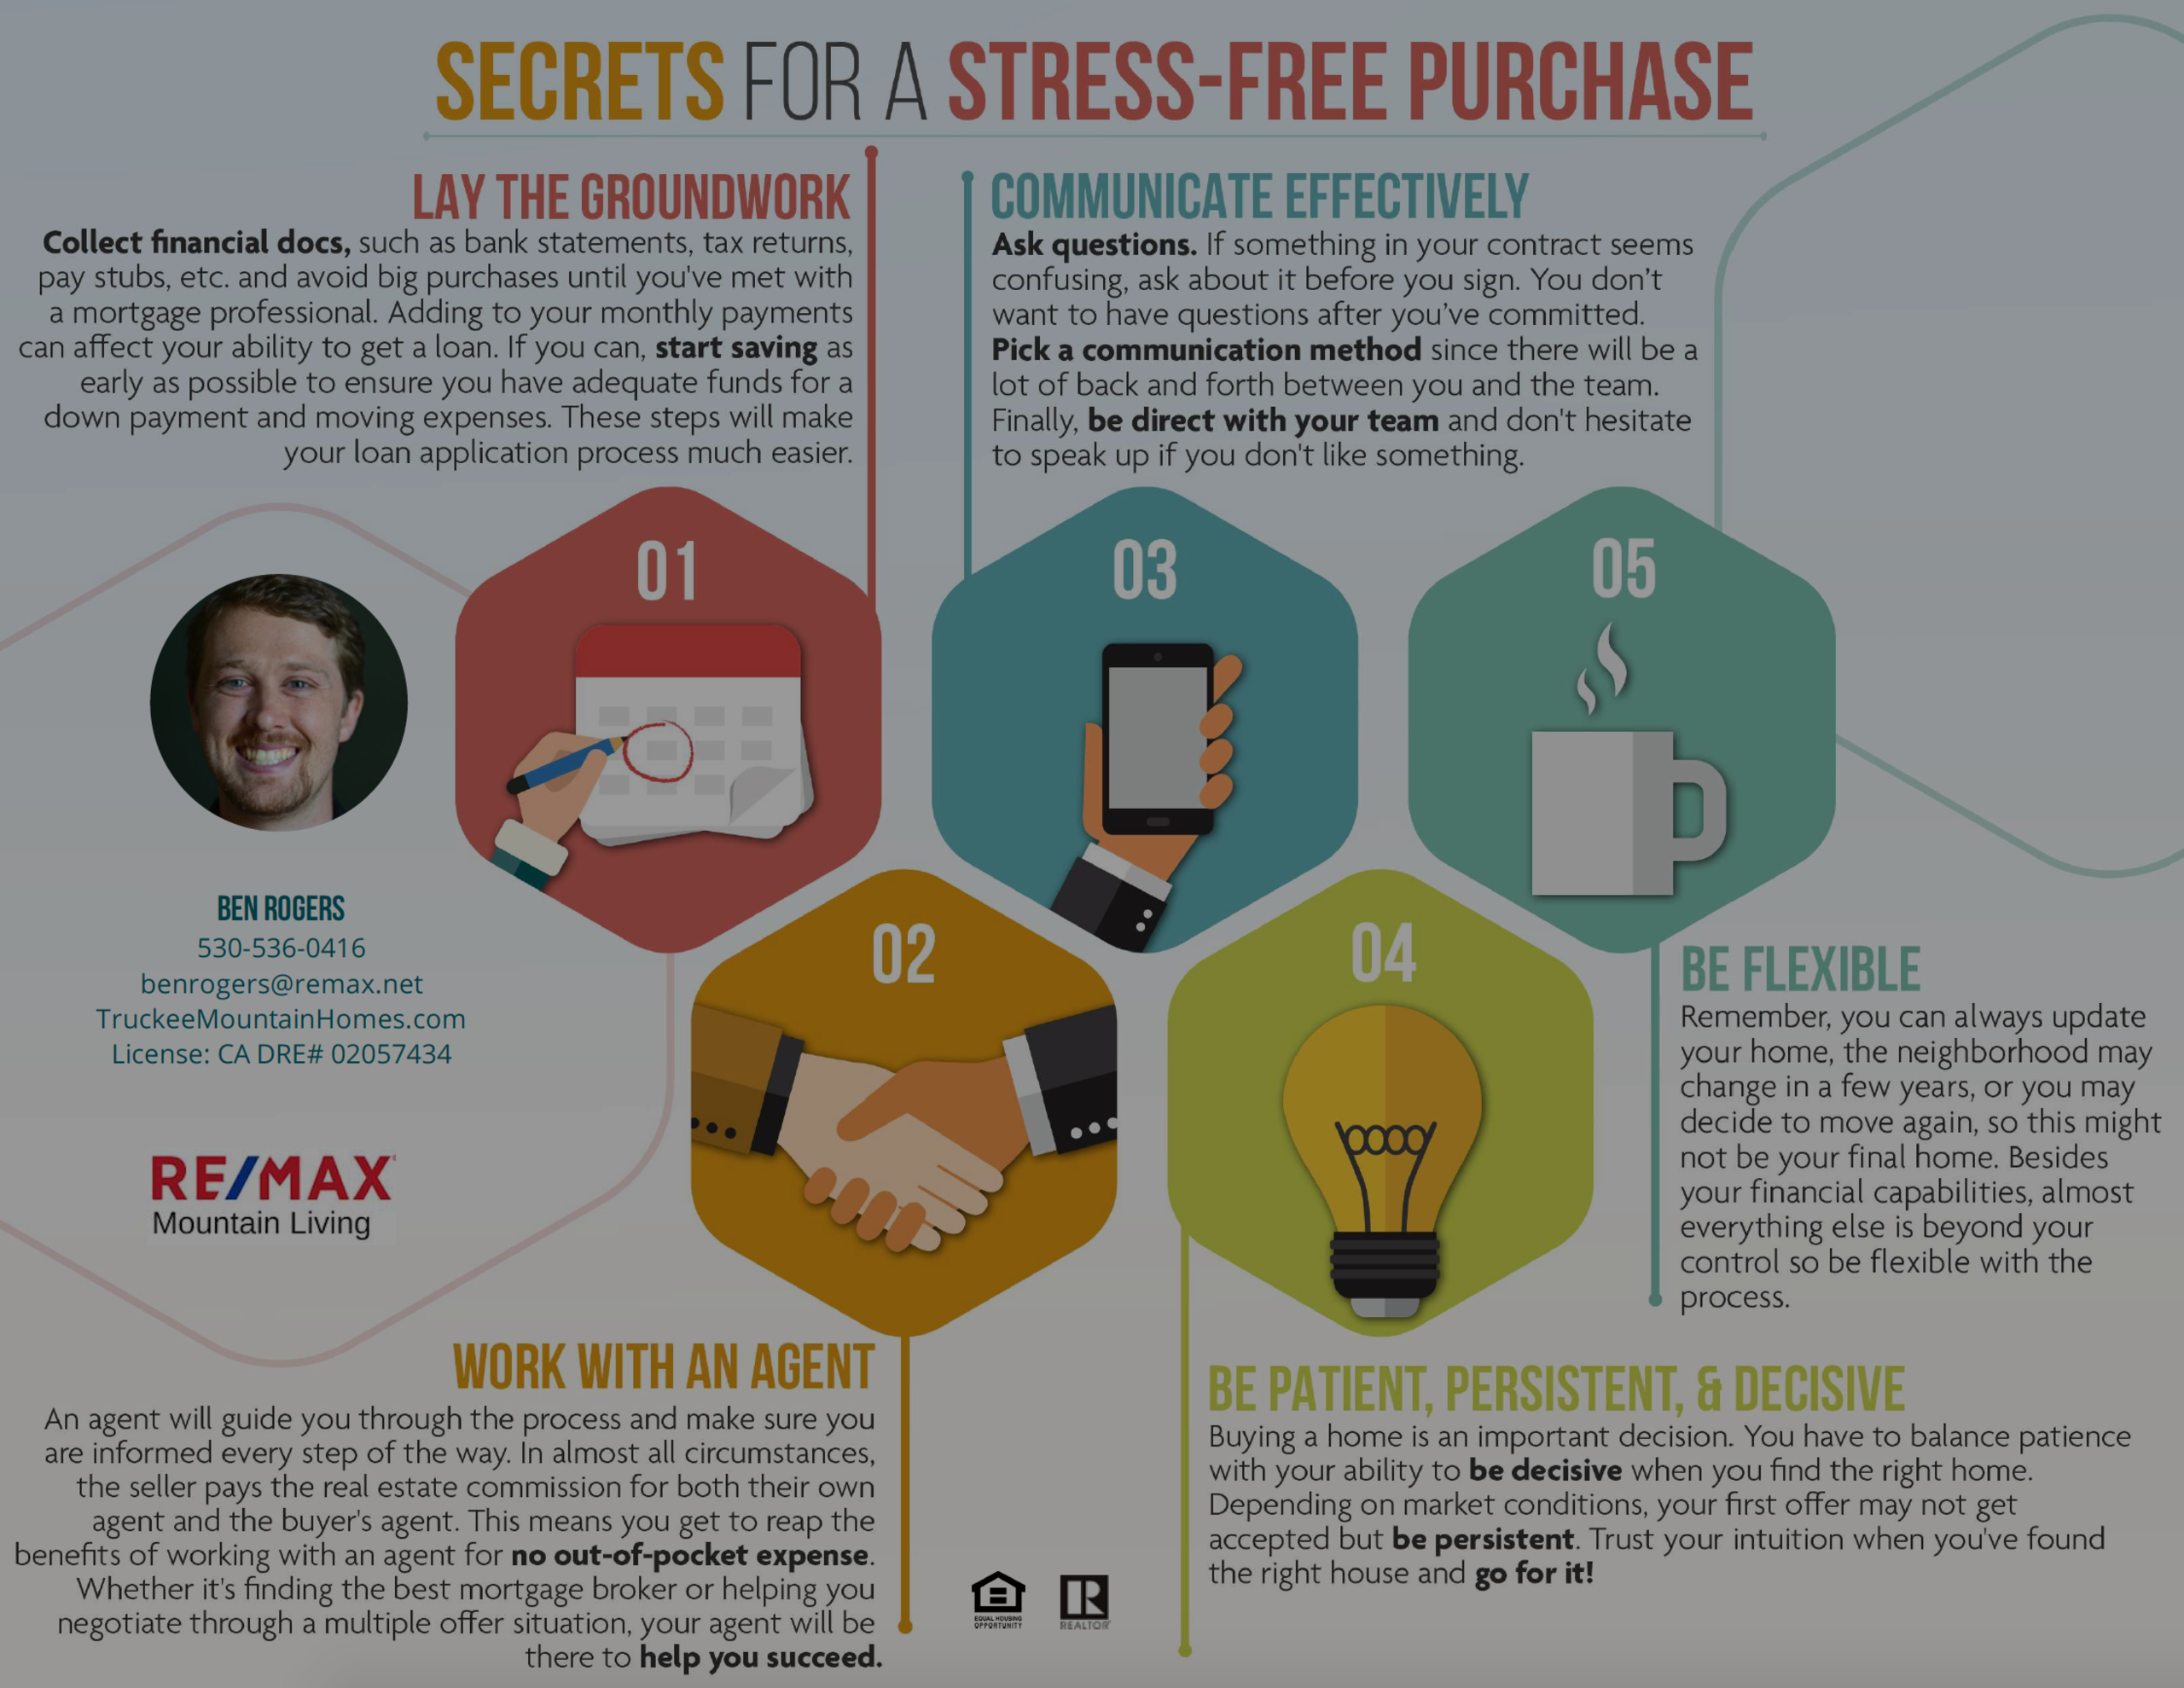 Secrets for a Stress Free Purchase – Infographic